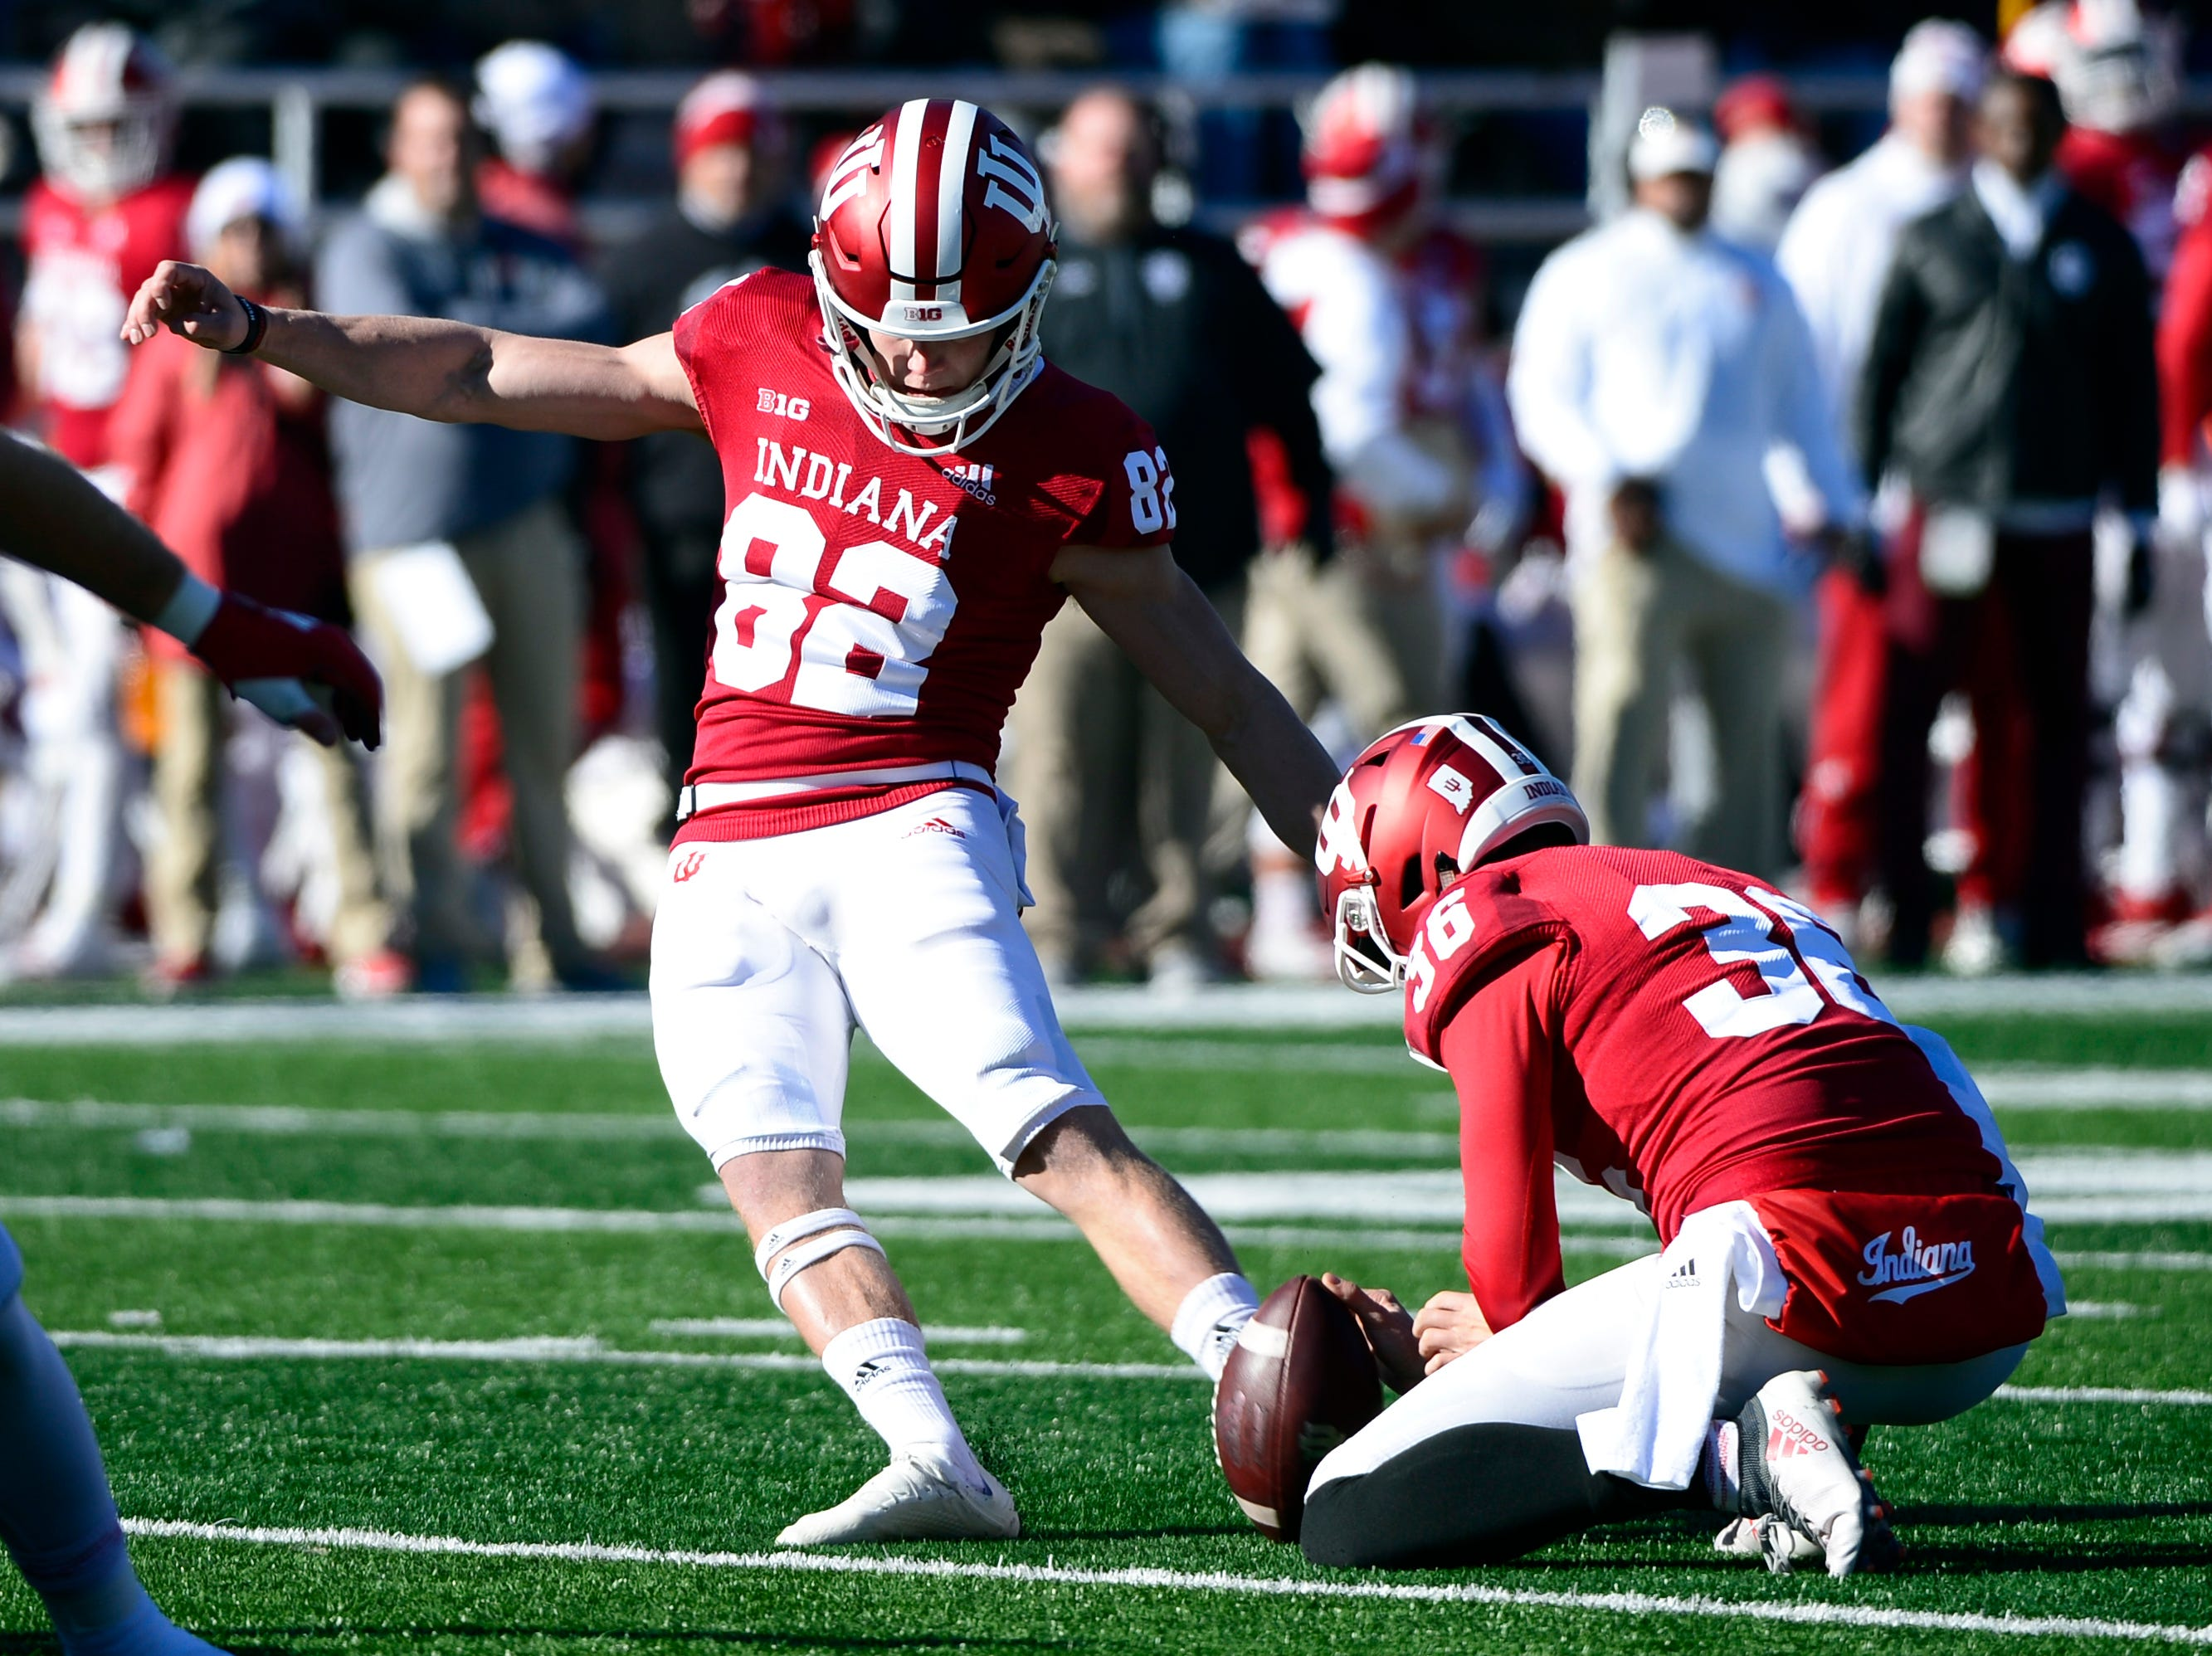 Indiana Hoosiers kicker Logan Justus (82) makes an extra point attempt during the game against Maryland at Memorial Stadium in Bloomington, Ind., on Satuday, Nov. 10, 2018.